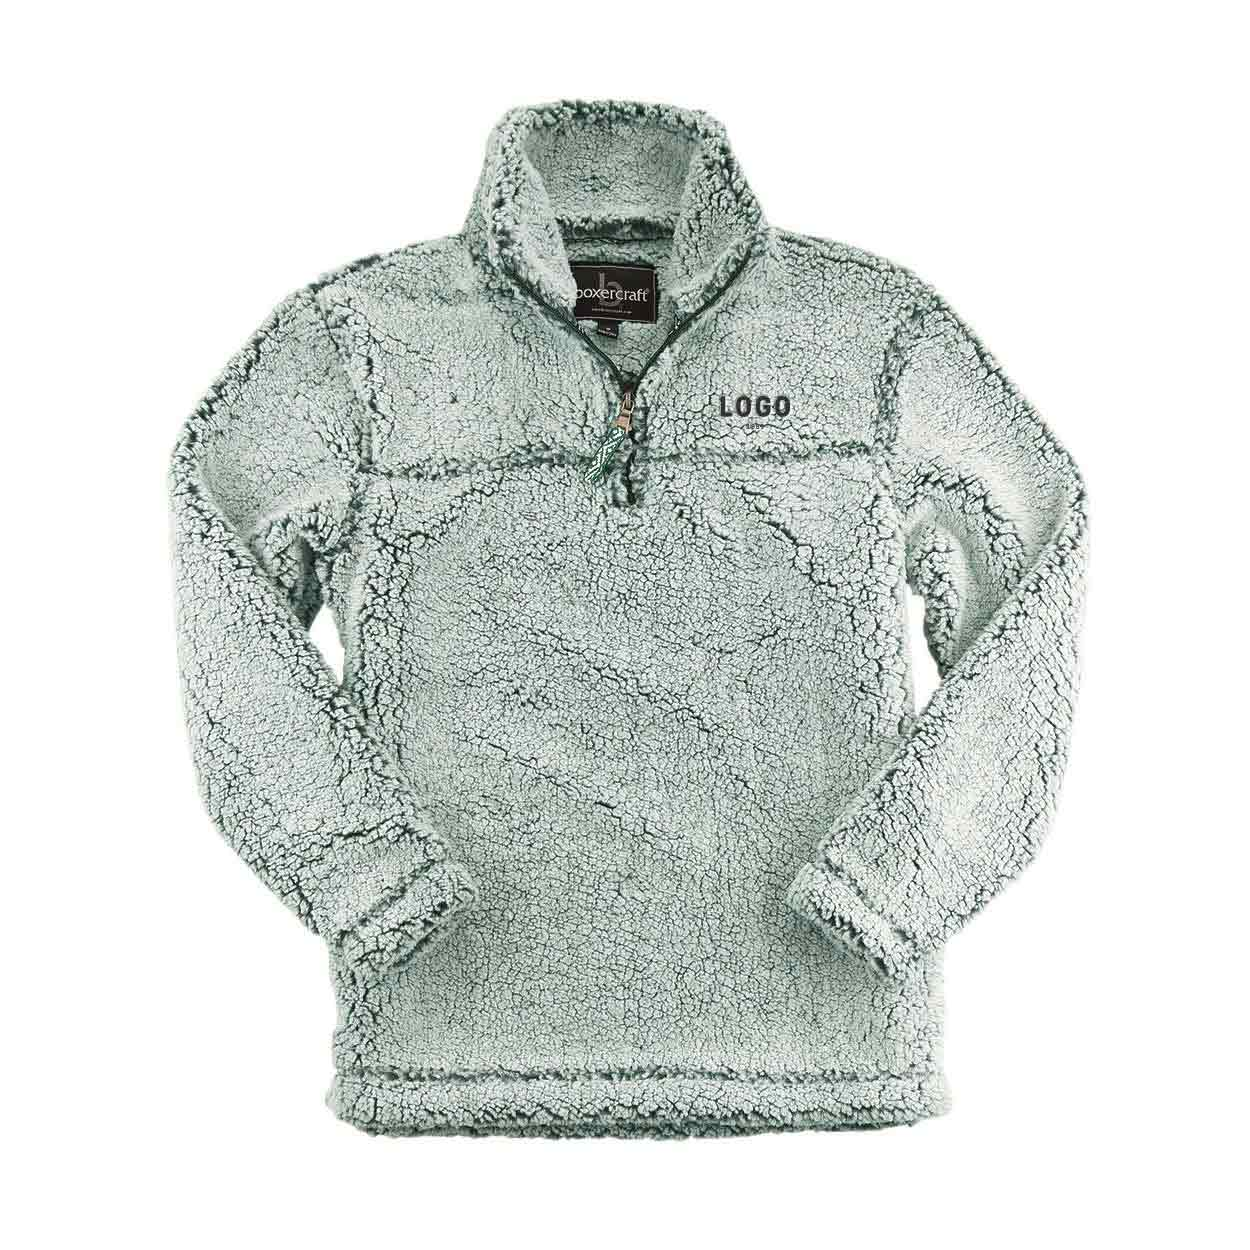 130189 sherpa quarter zip pullover embroidered up to 8k stitches